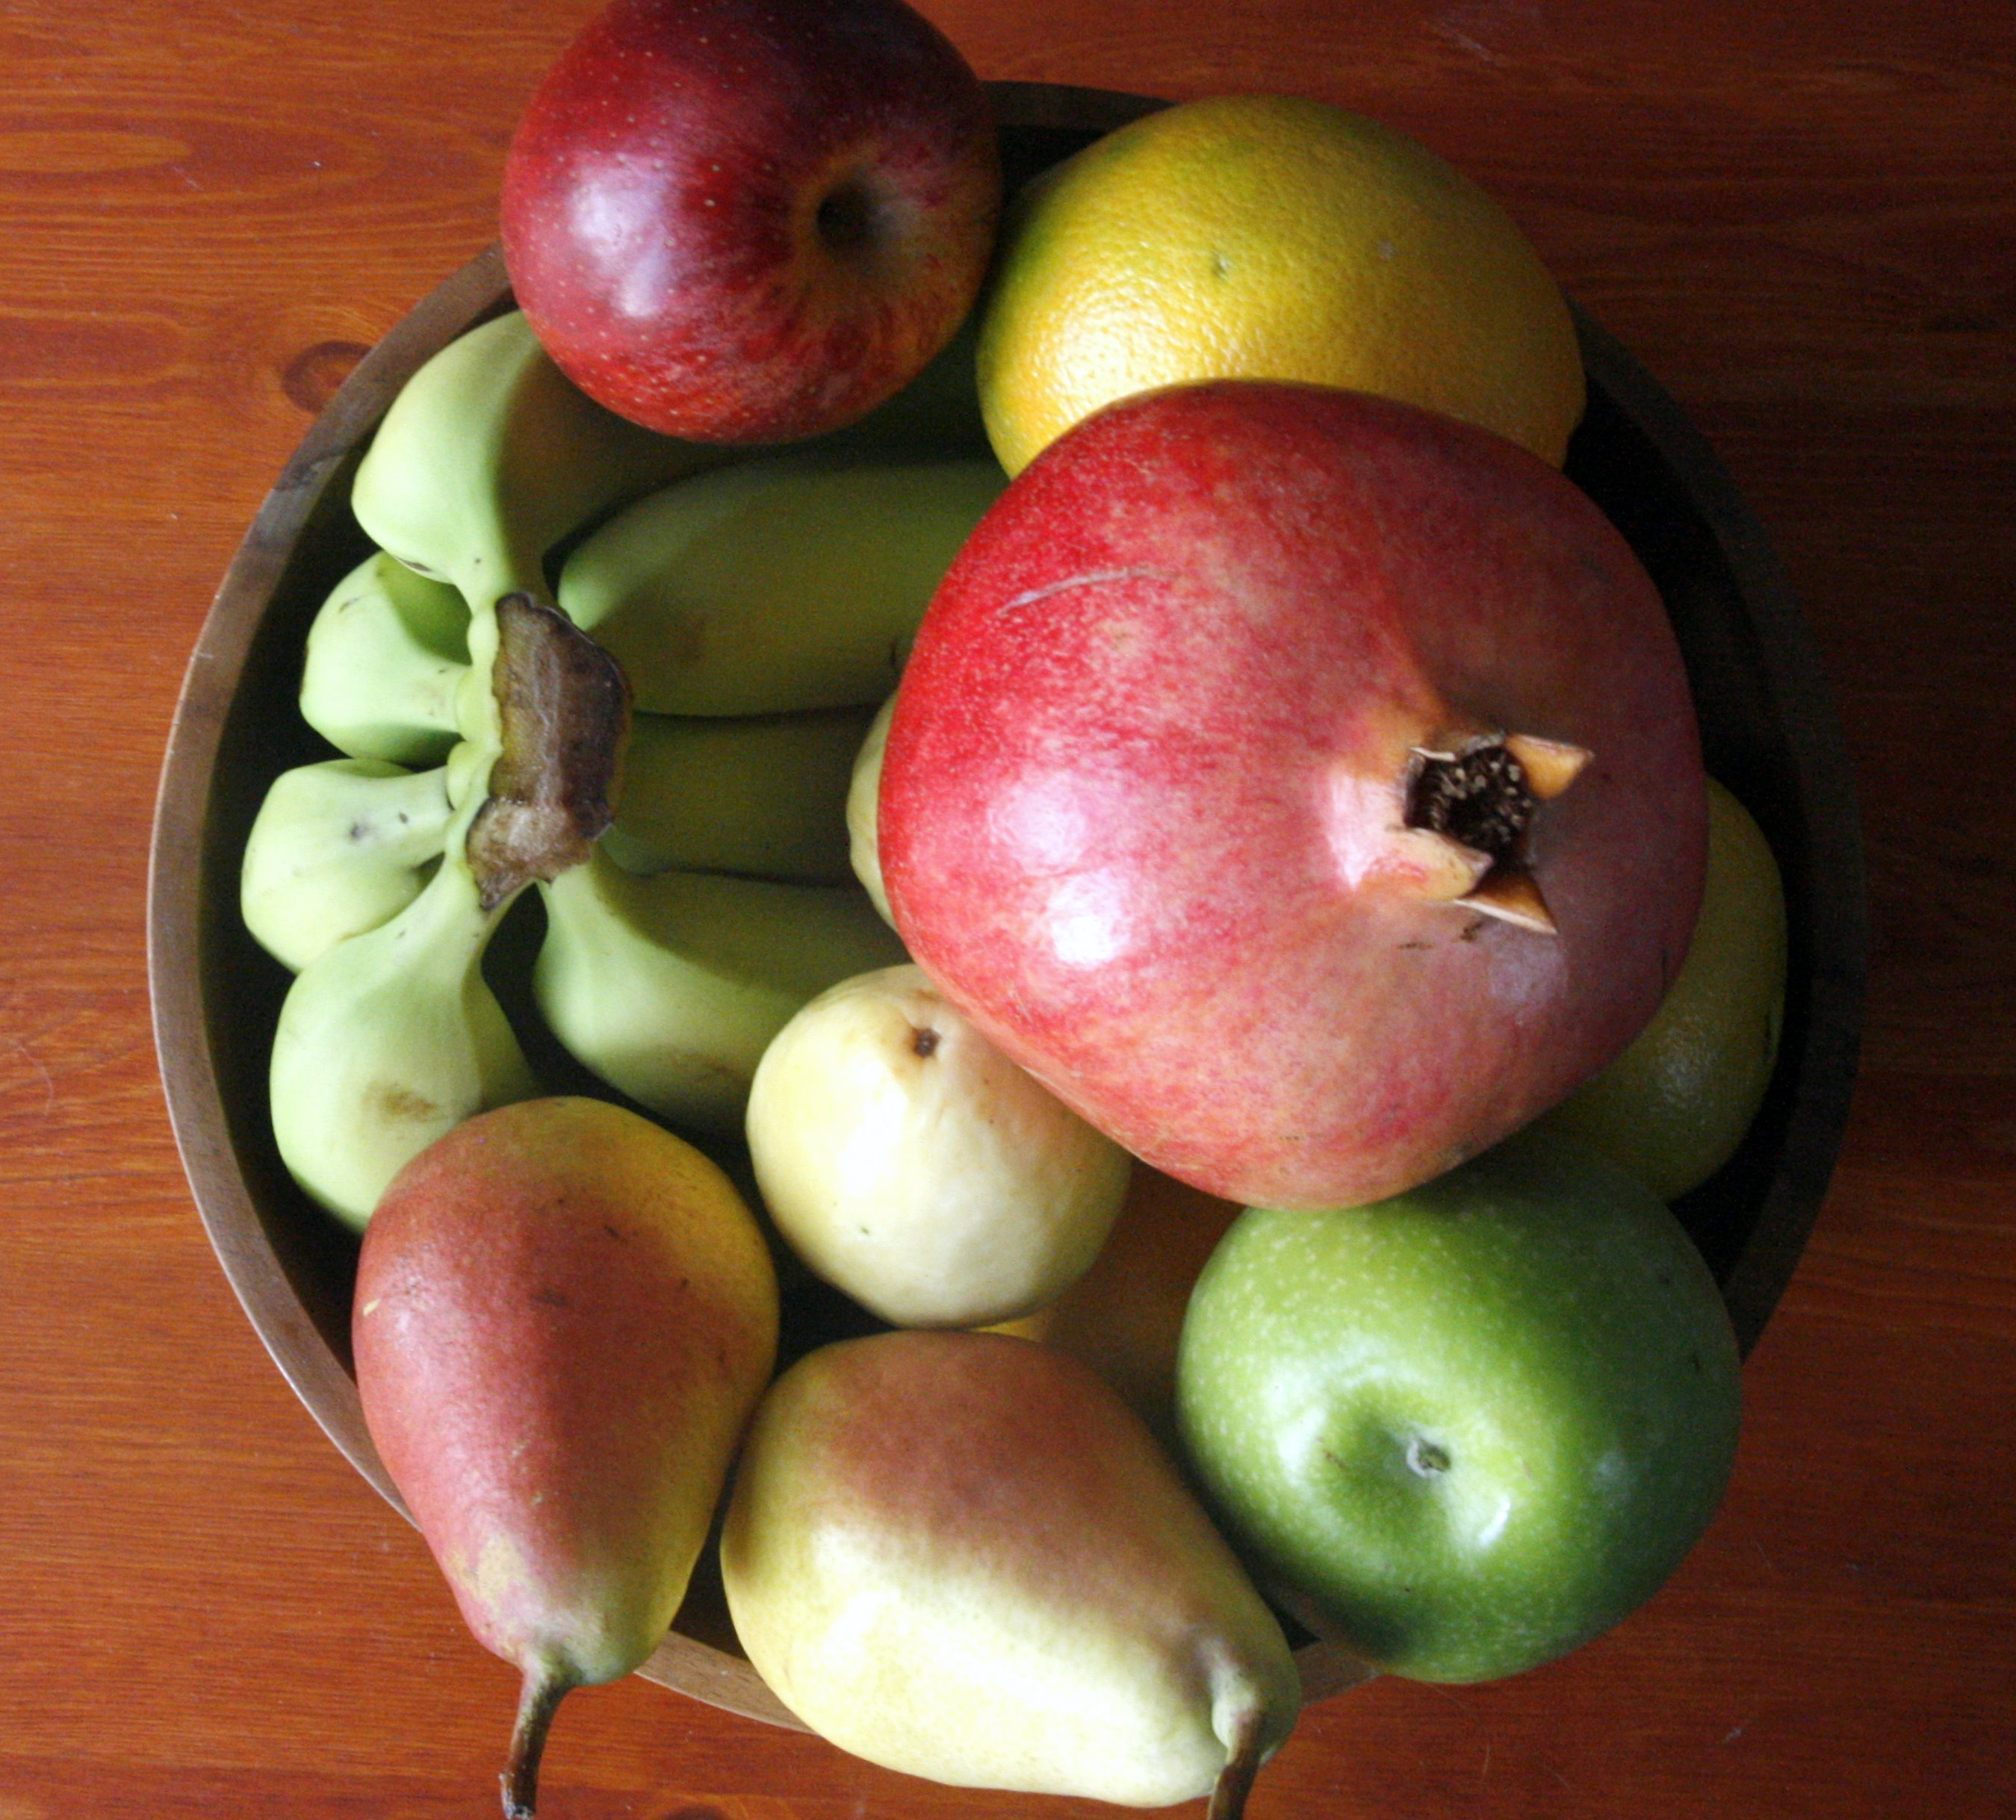 Fruit bowl containing pomegranate, pears, apples, bananas, an orange and a guava